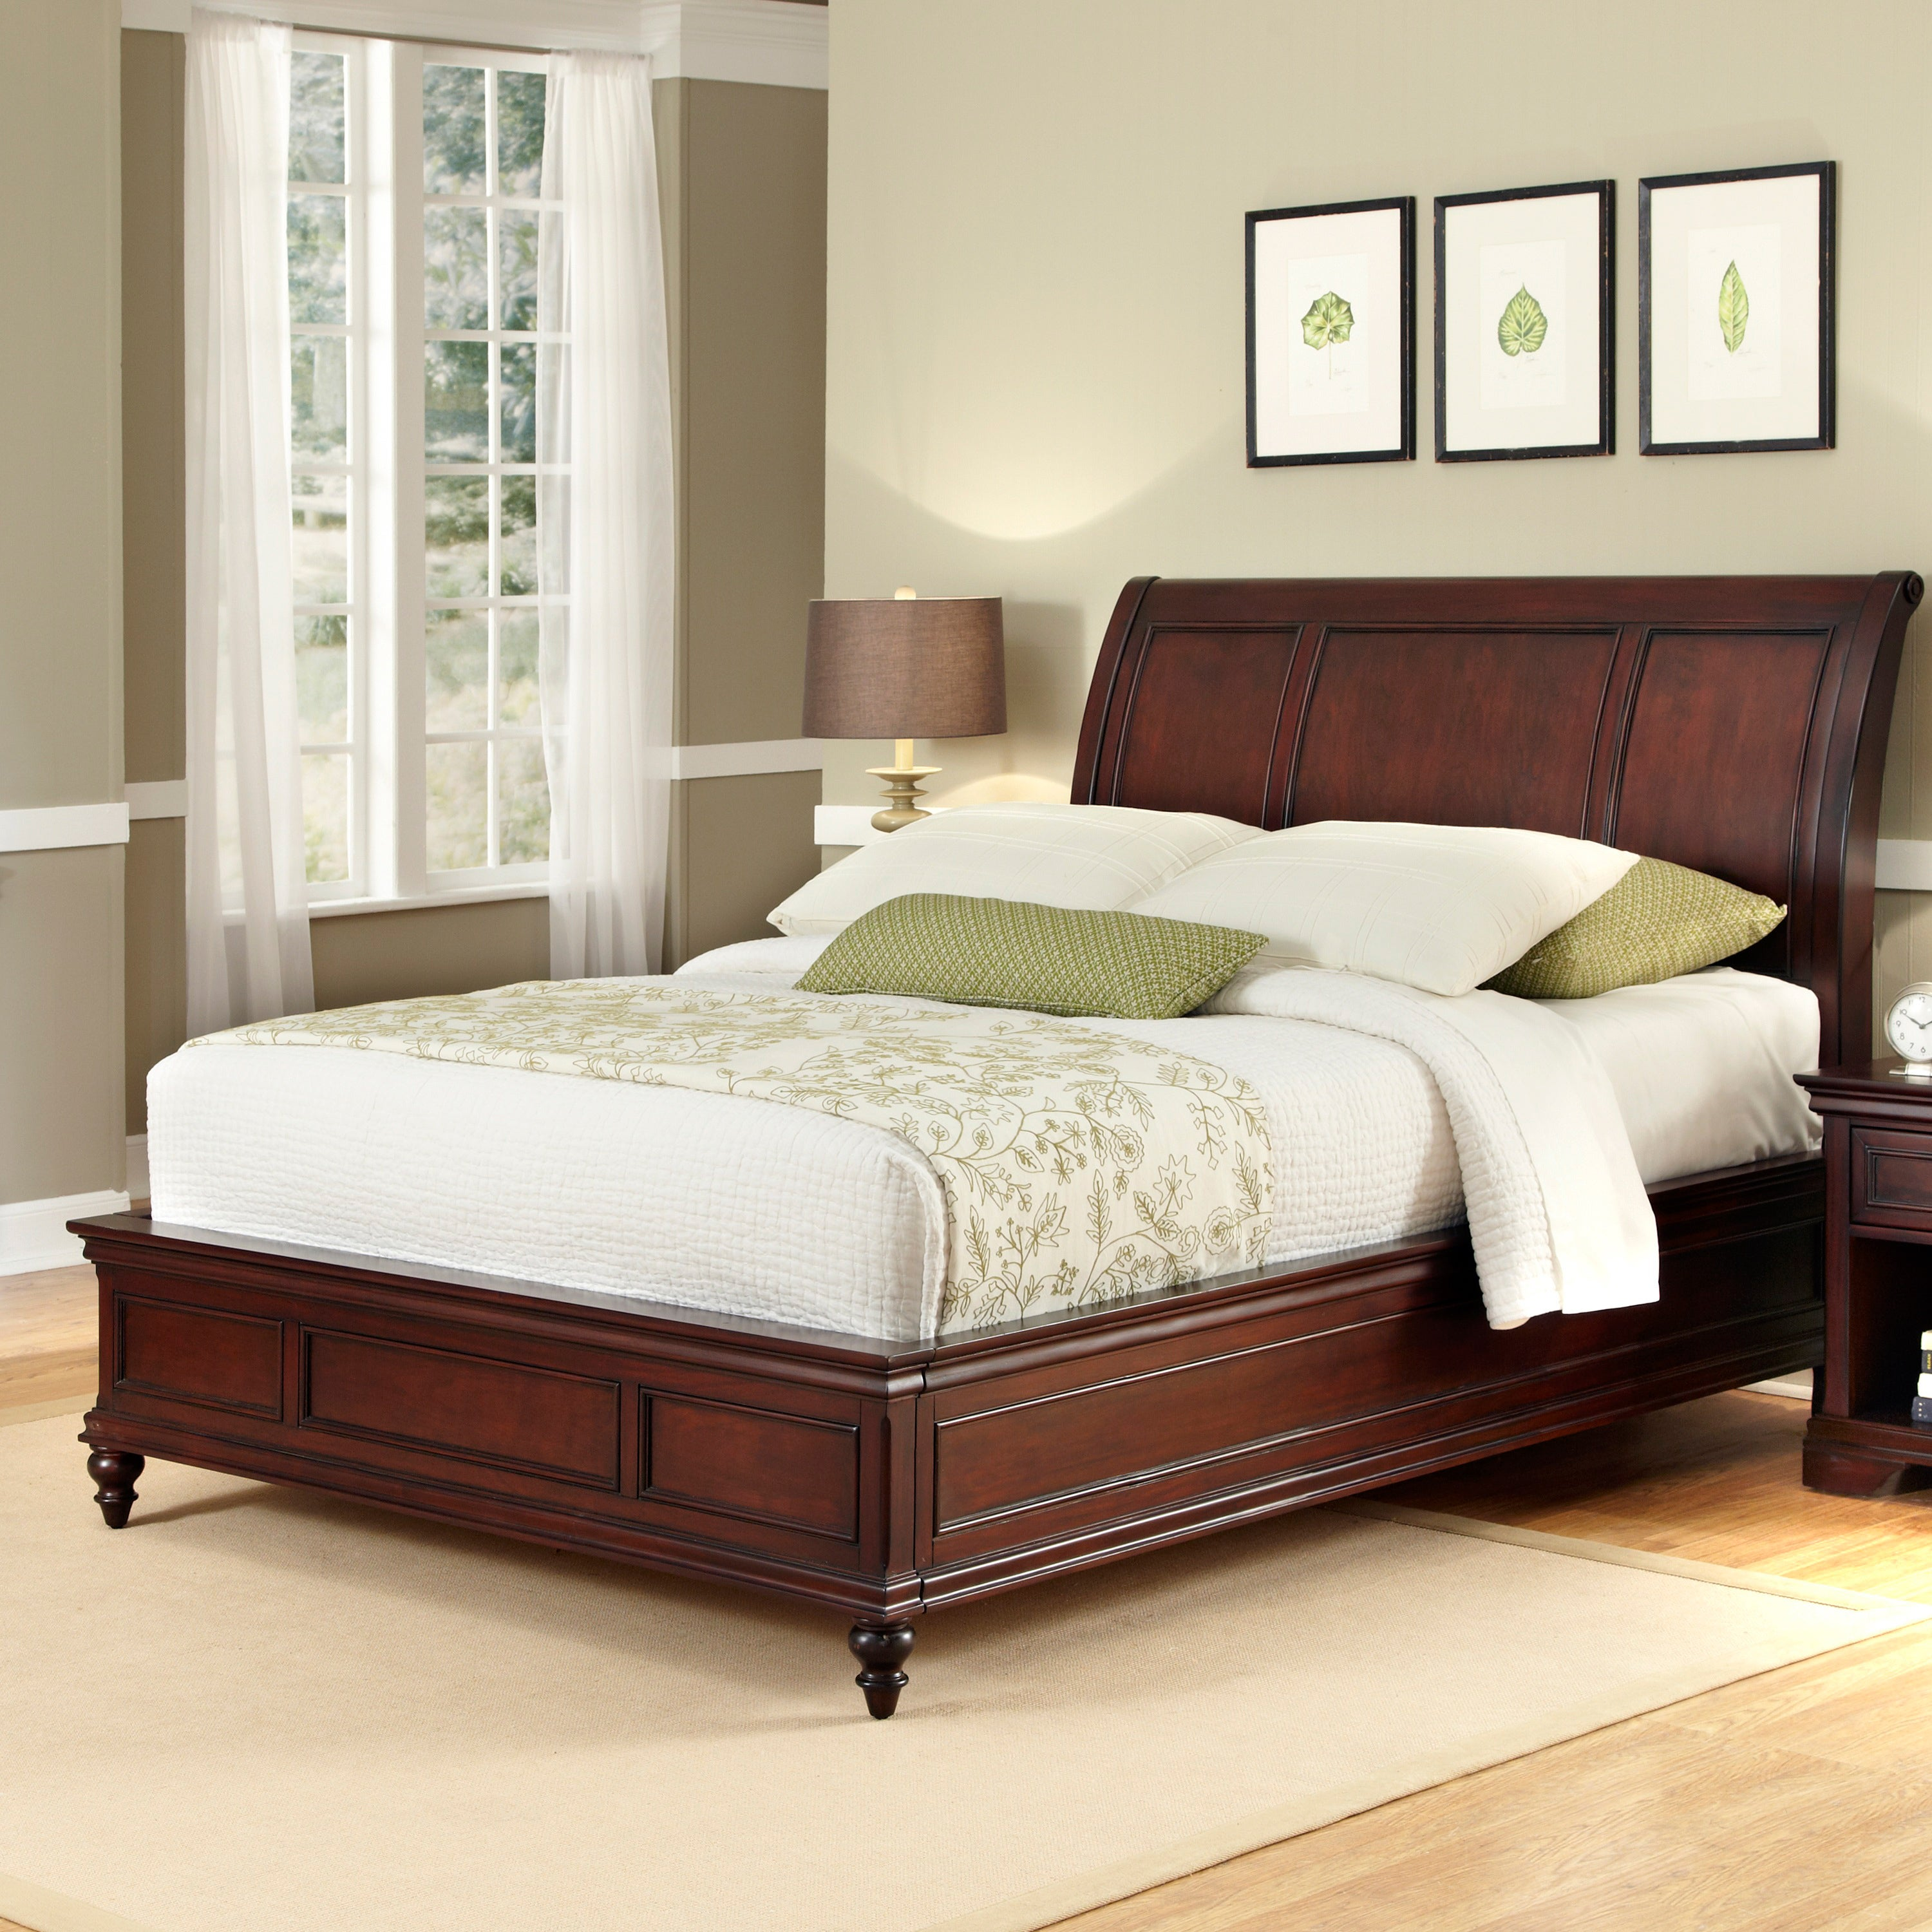 Lafayette King Sleigh Bed By Home Styles Free Shipping Today  # Muebles Lafayet